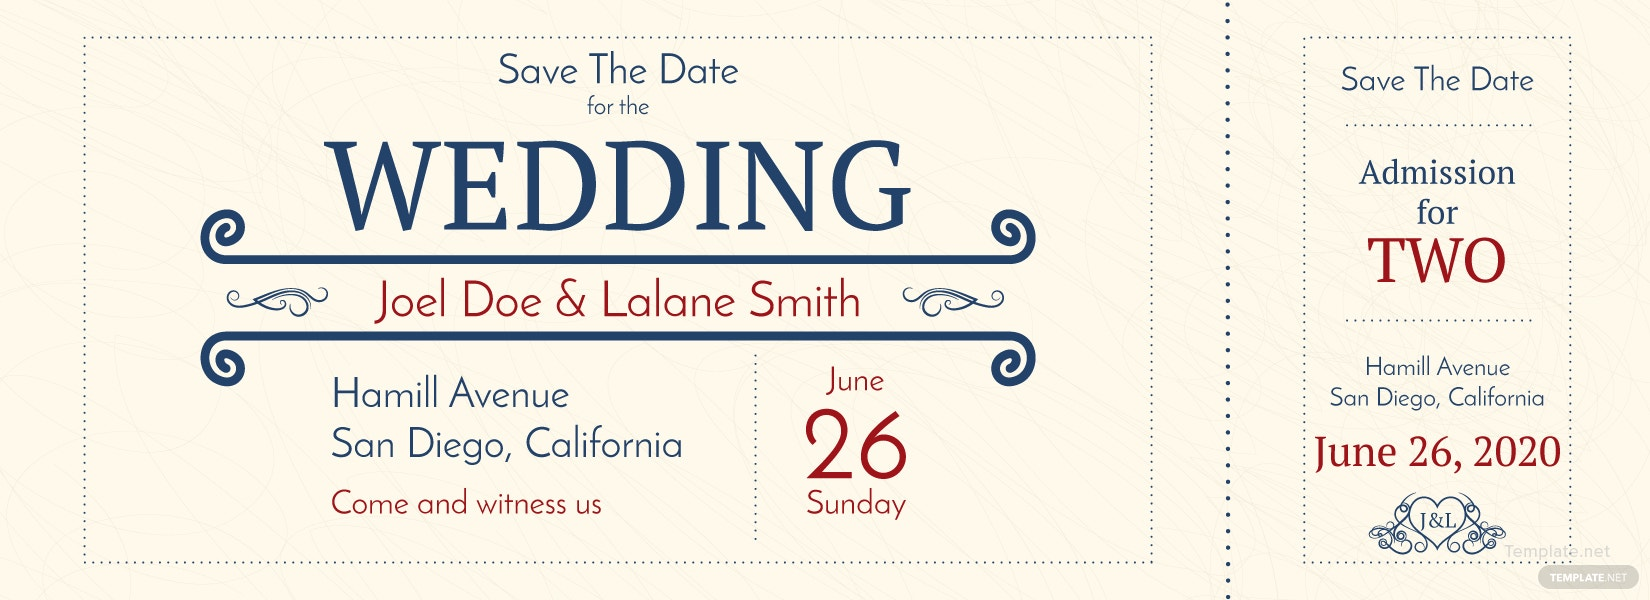 free wedding admission ticket template in adobe photoshop